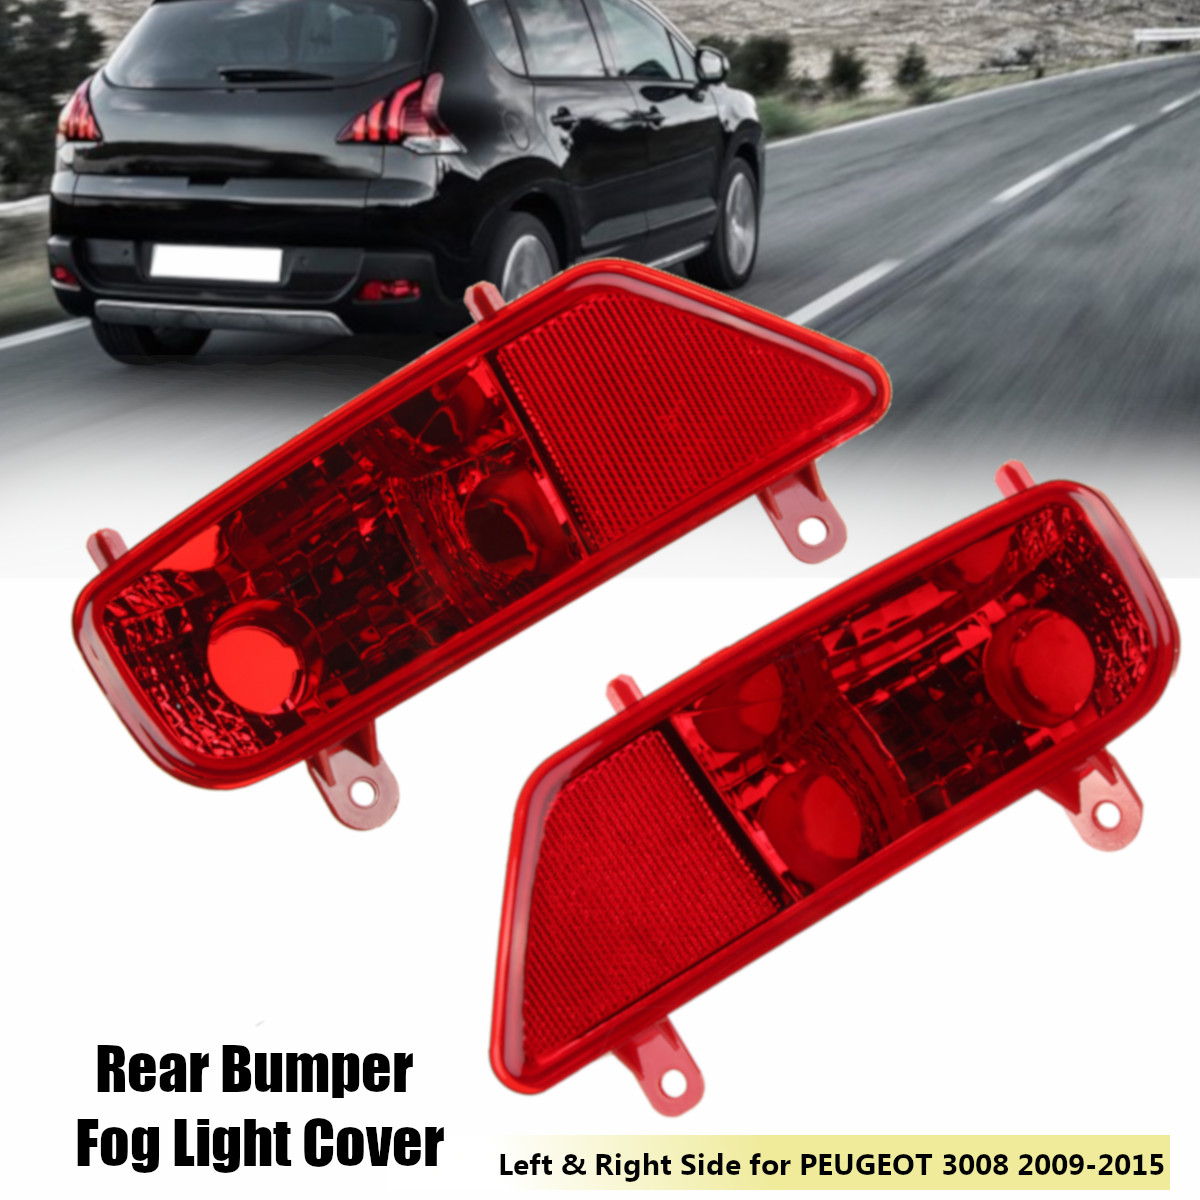 2X Car Rear Left Right Bumper Fog Light Lamp Cover Case Box No Light For PEUGEOT 3008 2009 2010 2011 2012 2013 2014 2015 5.0 2 R image